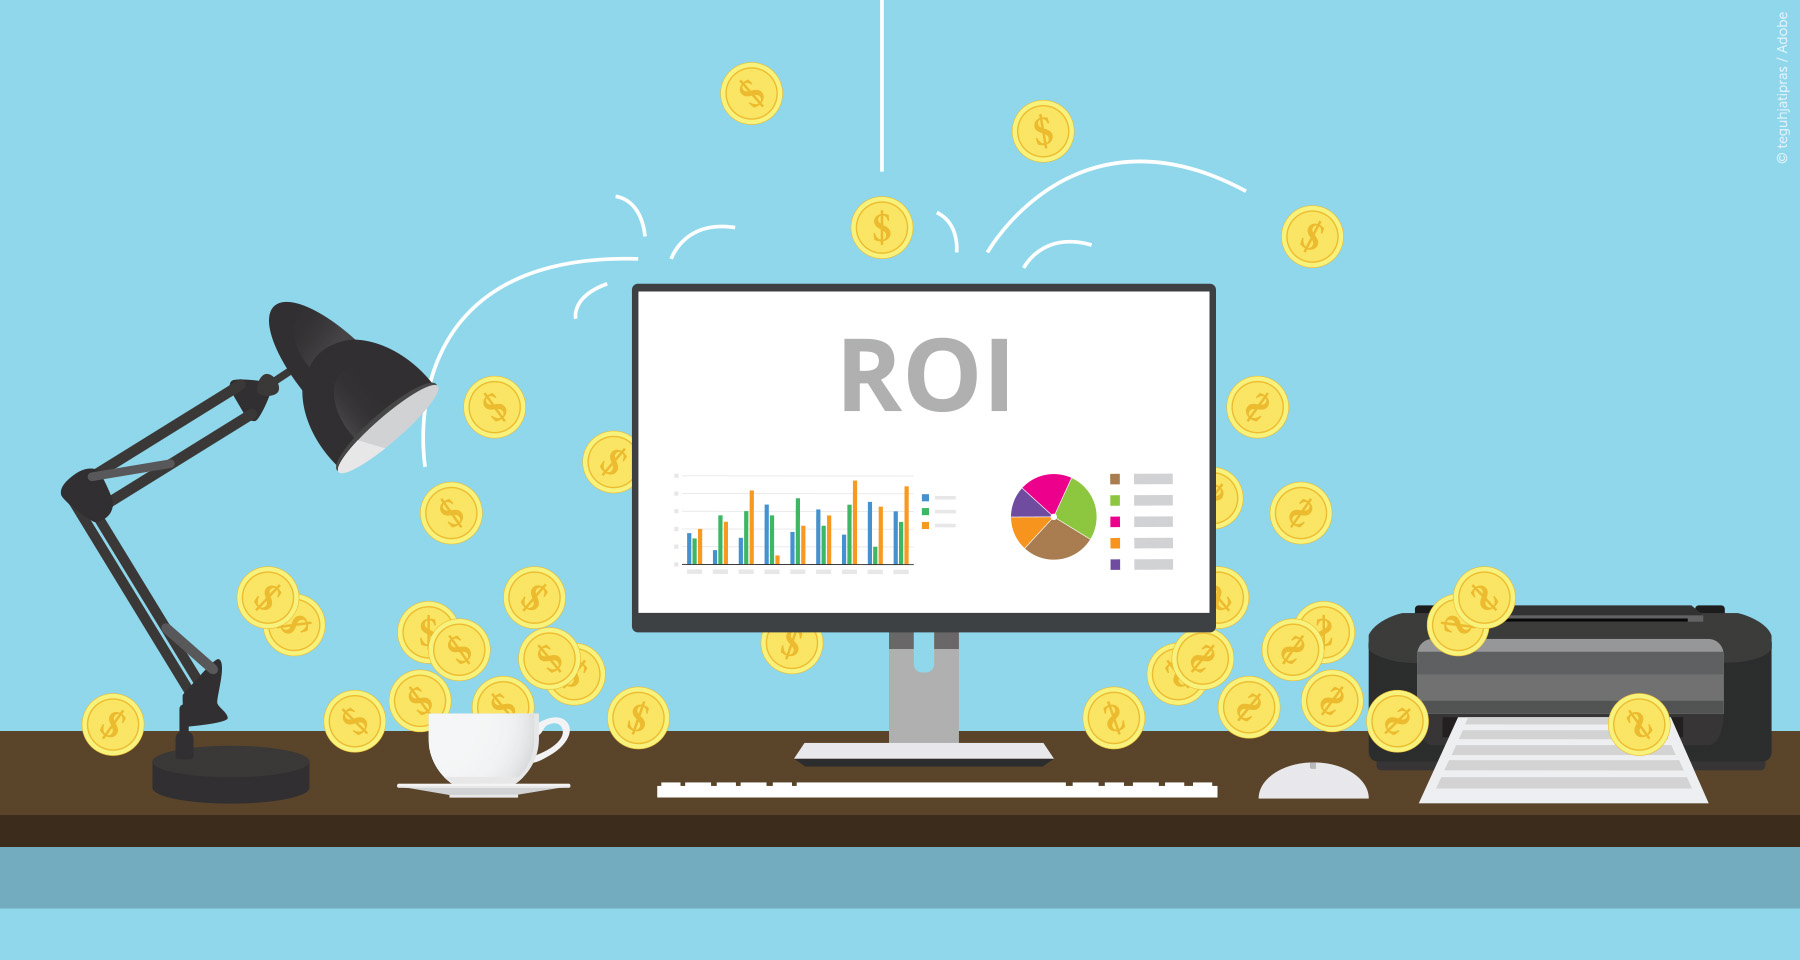 Smart marketing + better ROI = satisfied ad client